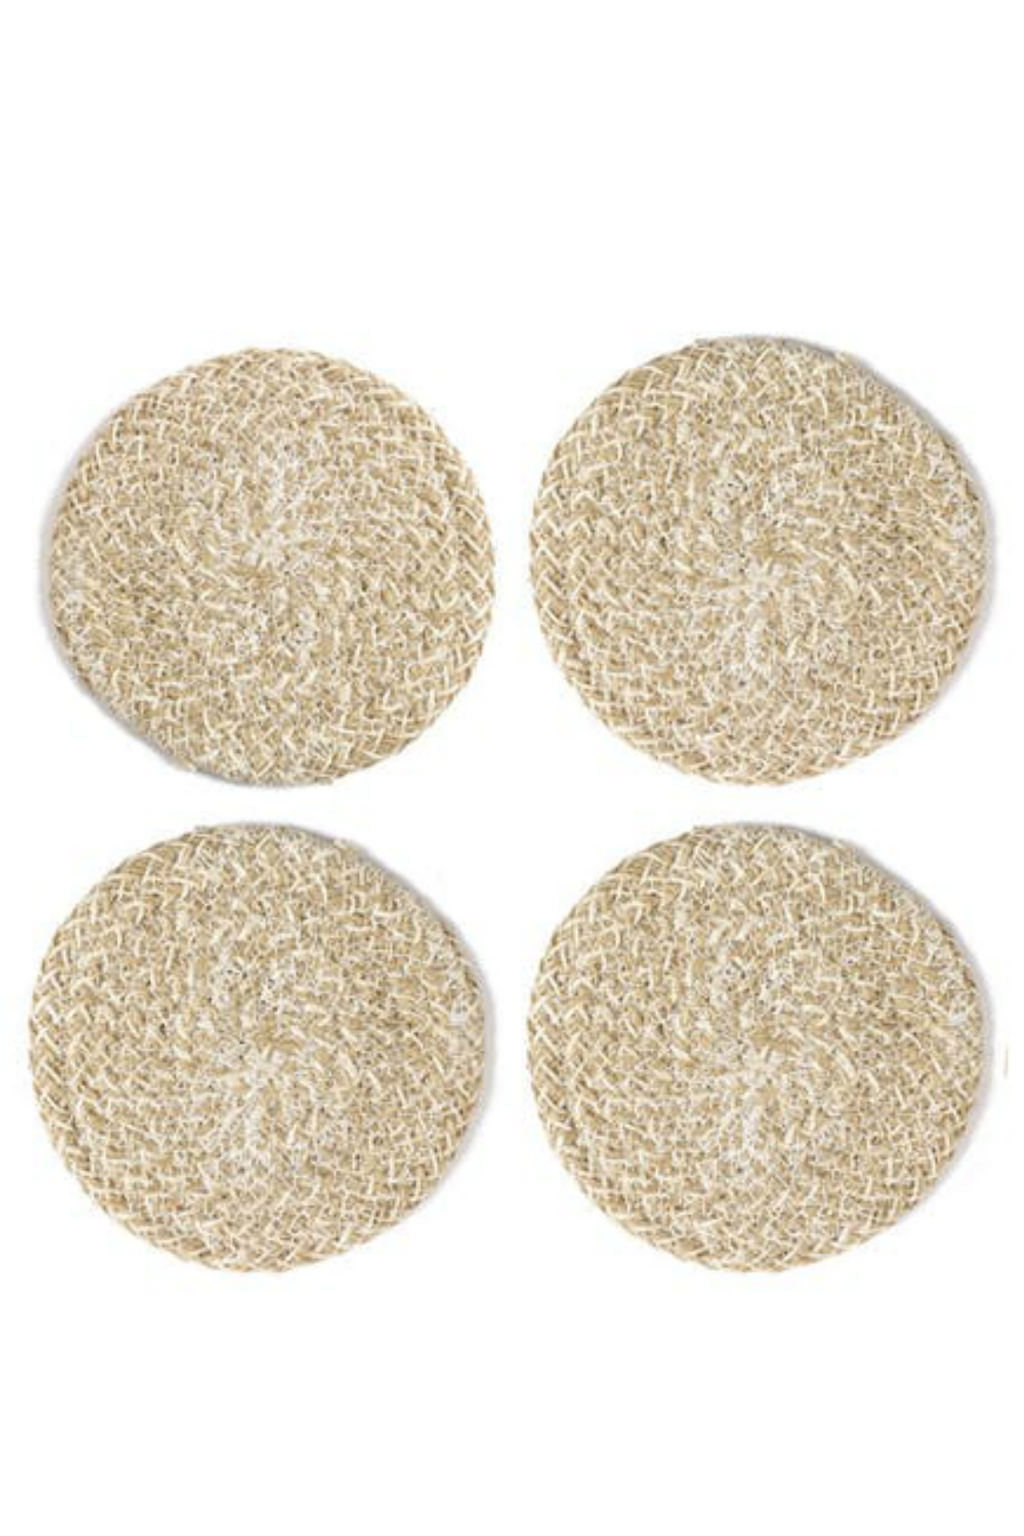 Texture by Design Design Ideas Melia Coaster Sand